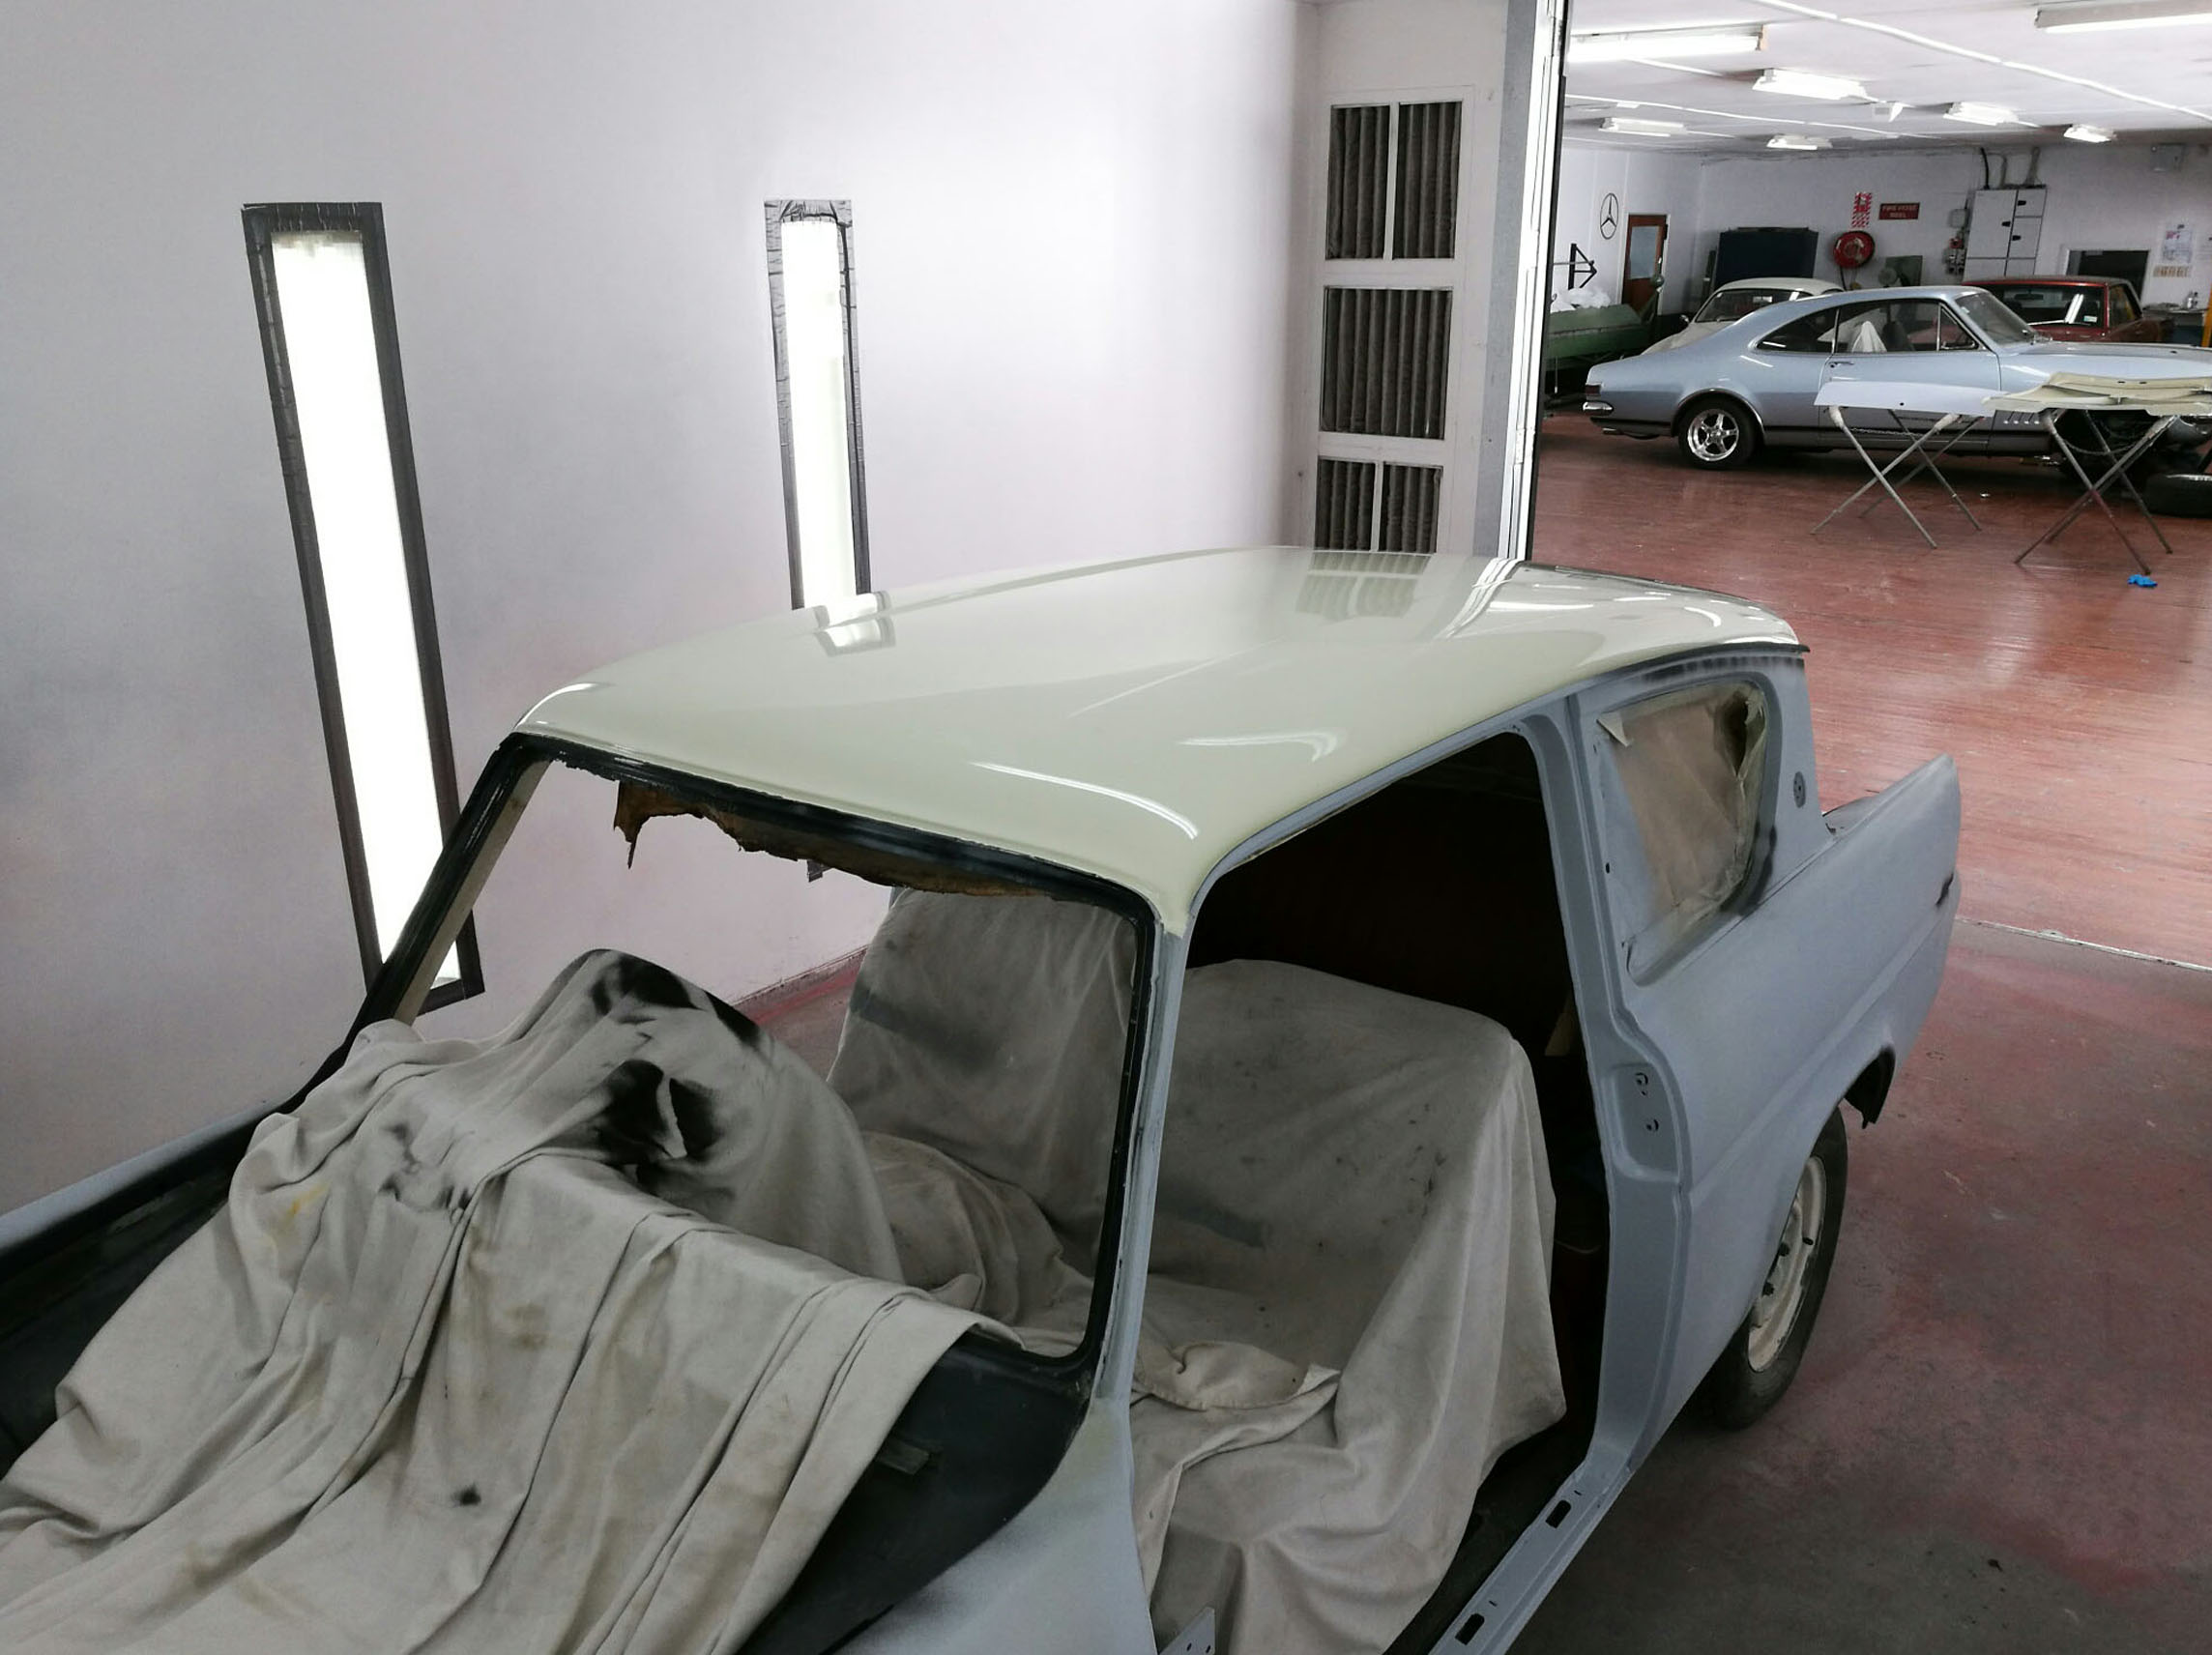 harry potter lives again ford anglia restoration the surgery classic car restoration. Black Bedroom Furniture Sets. Home Design Ideas